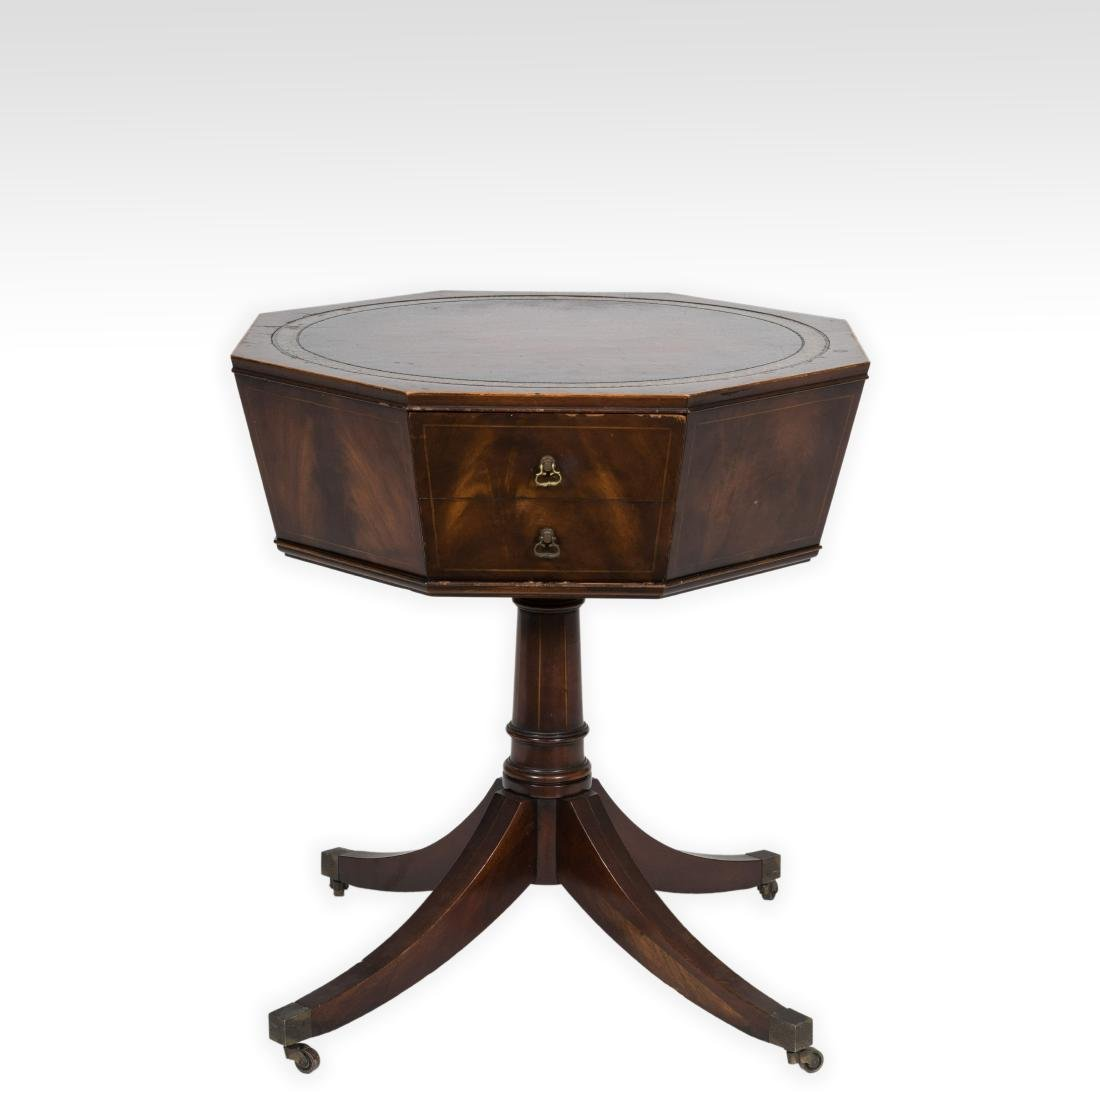 Weiman Octagonal Leather Top Table